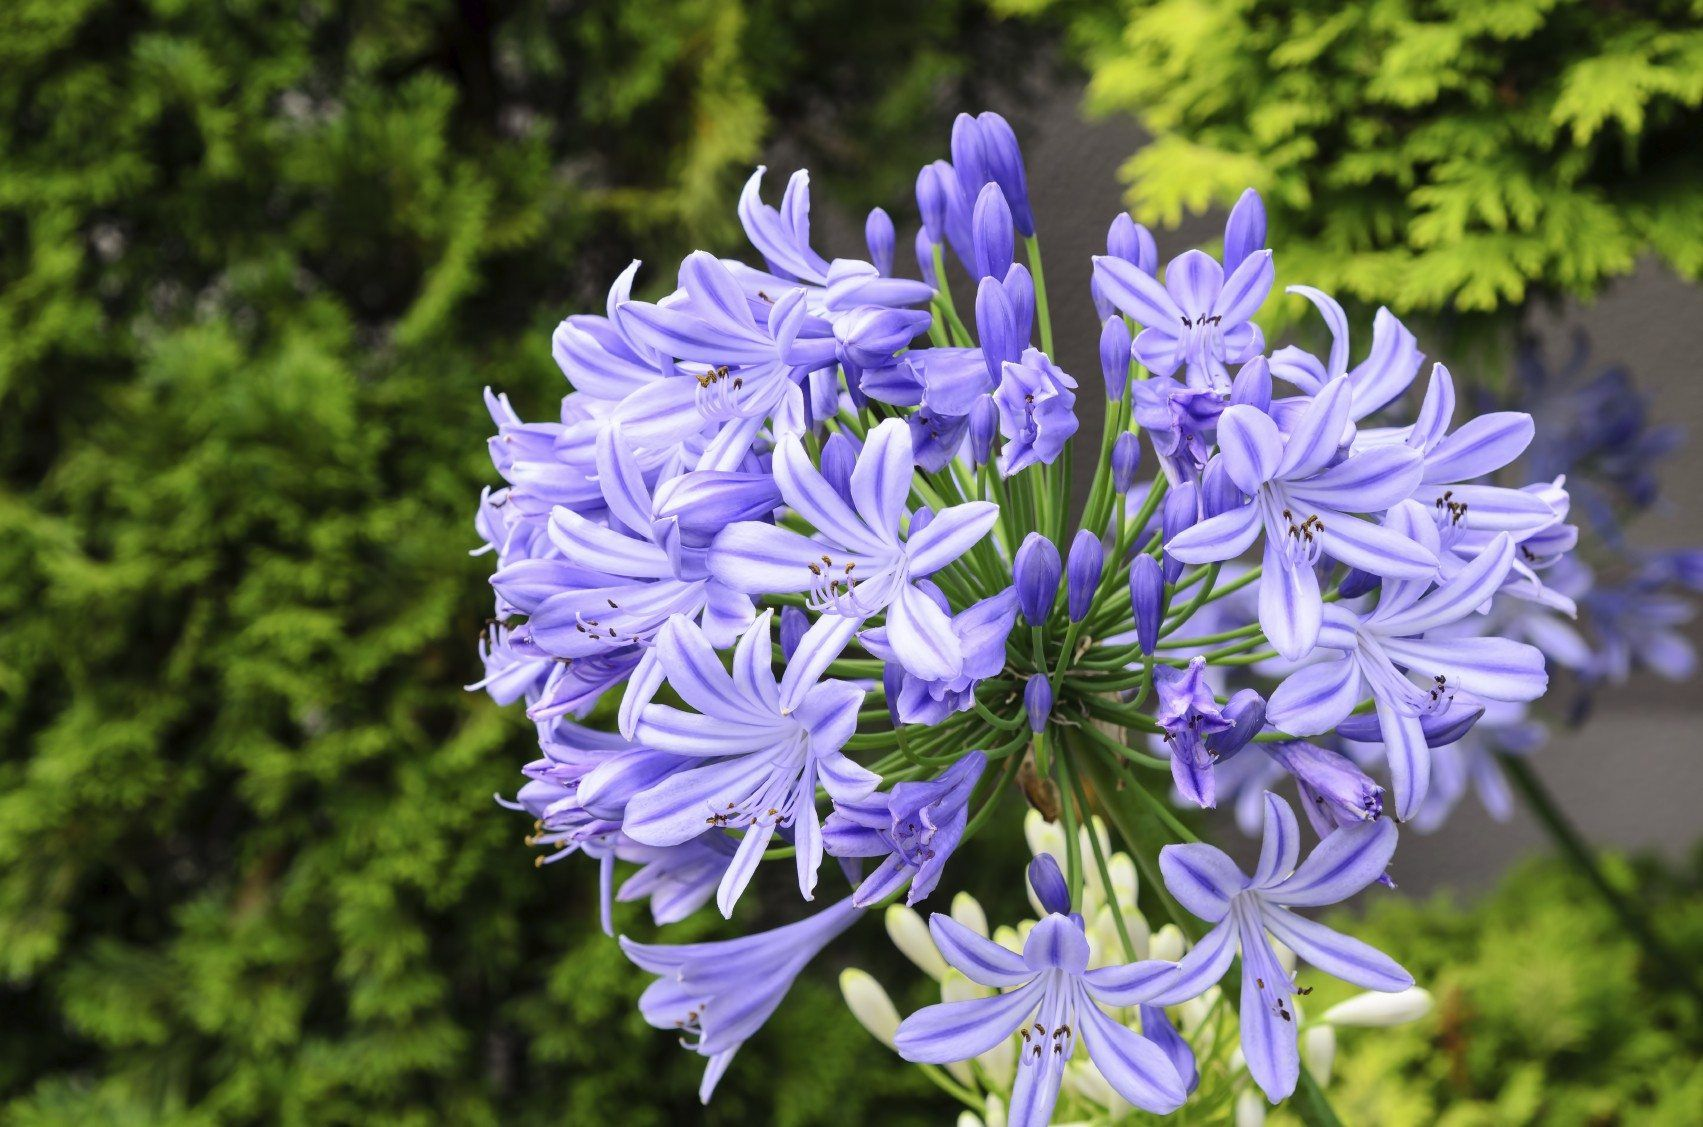 When To Fertilize Agapanthus Tips On Fertilizing Agapanthus Plants Agapanthus Plant Agapanthus Plants